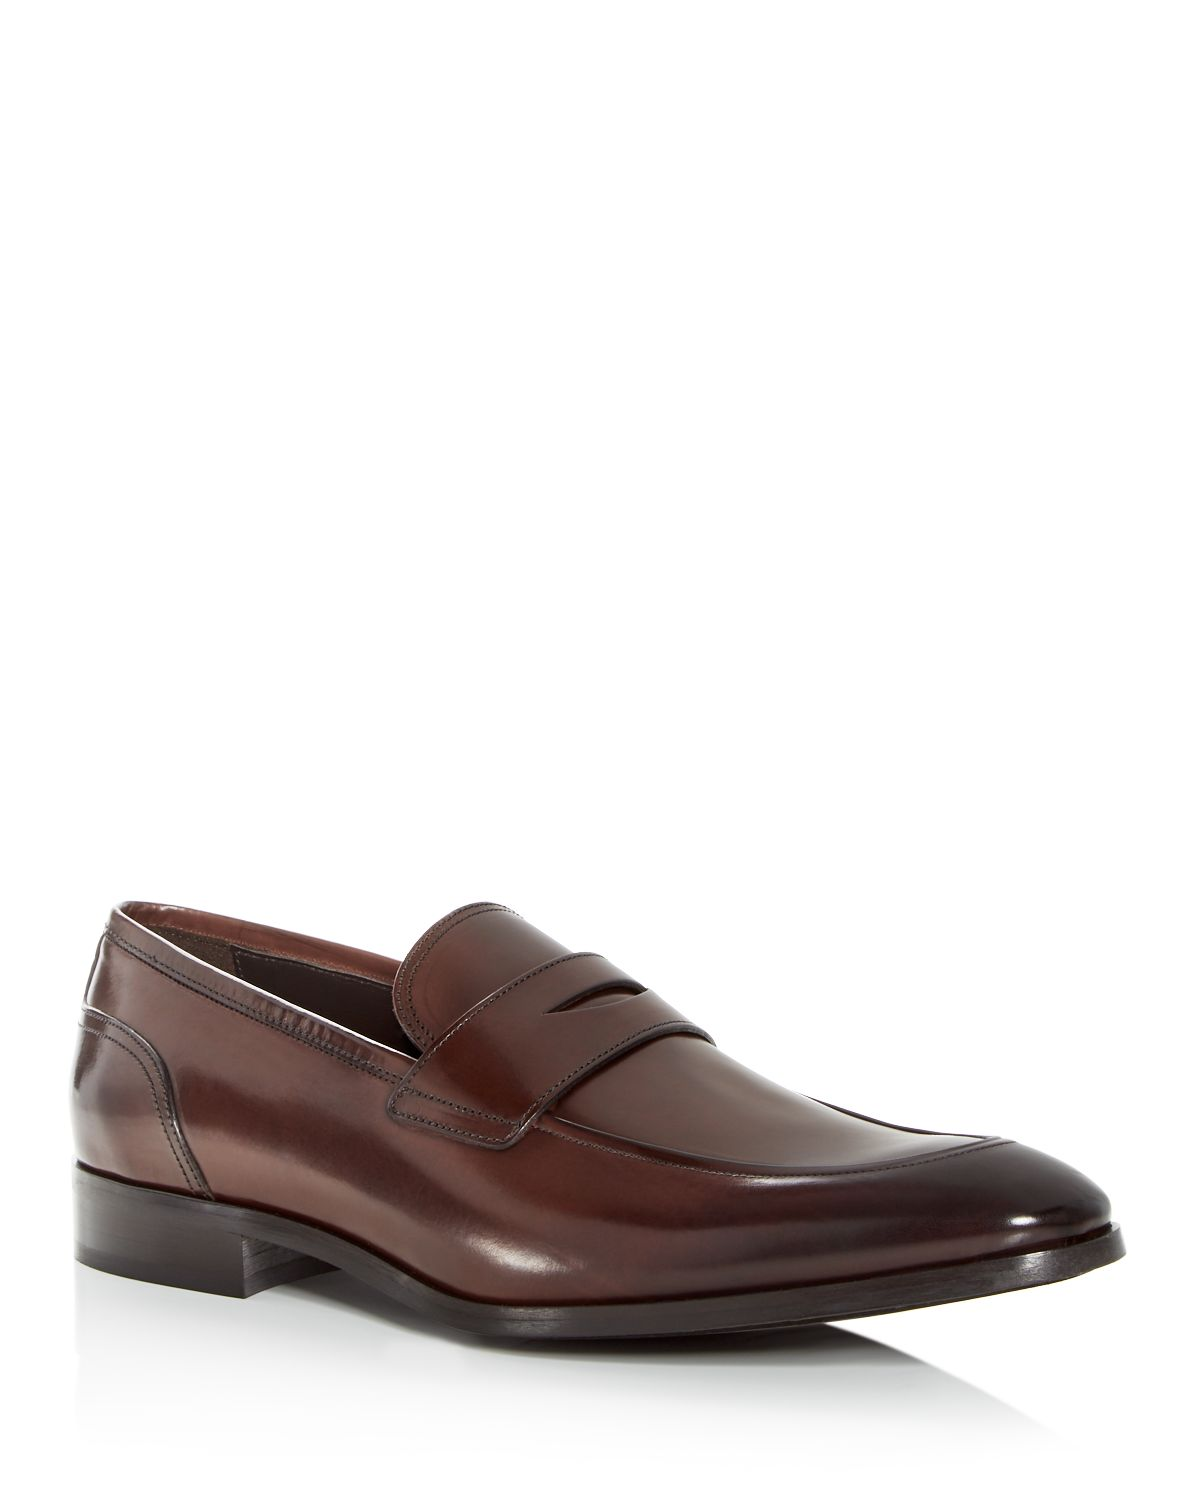 To Boot Men's Deane Penny Loafer